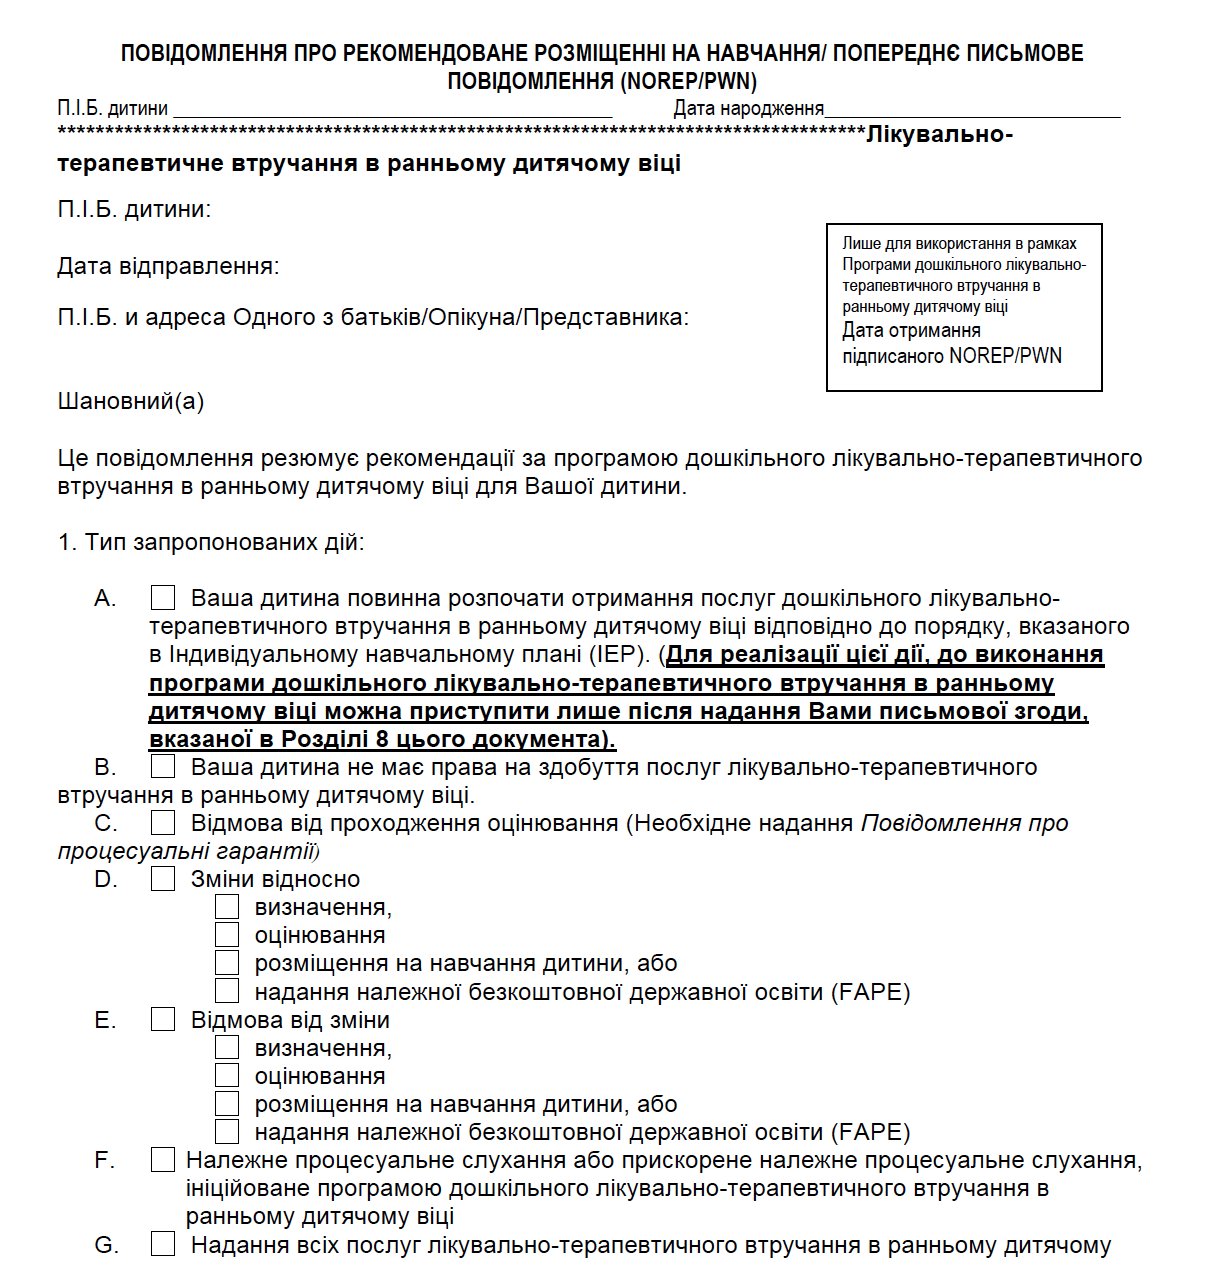 NOTICE OF RECOMMENDED EDUCATIONAL PLACEMENT/PRIOR WRITTEN NOTICE (NOREP/PWN) - Preschool Early Intervention Ukranian